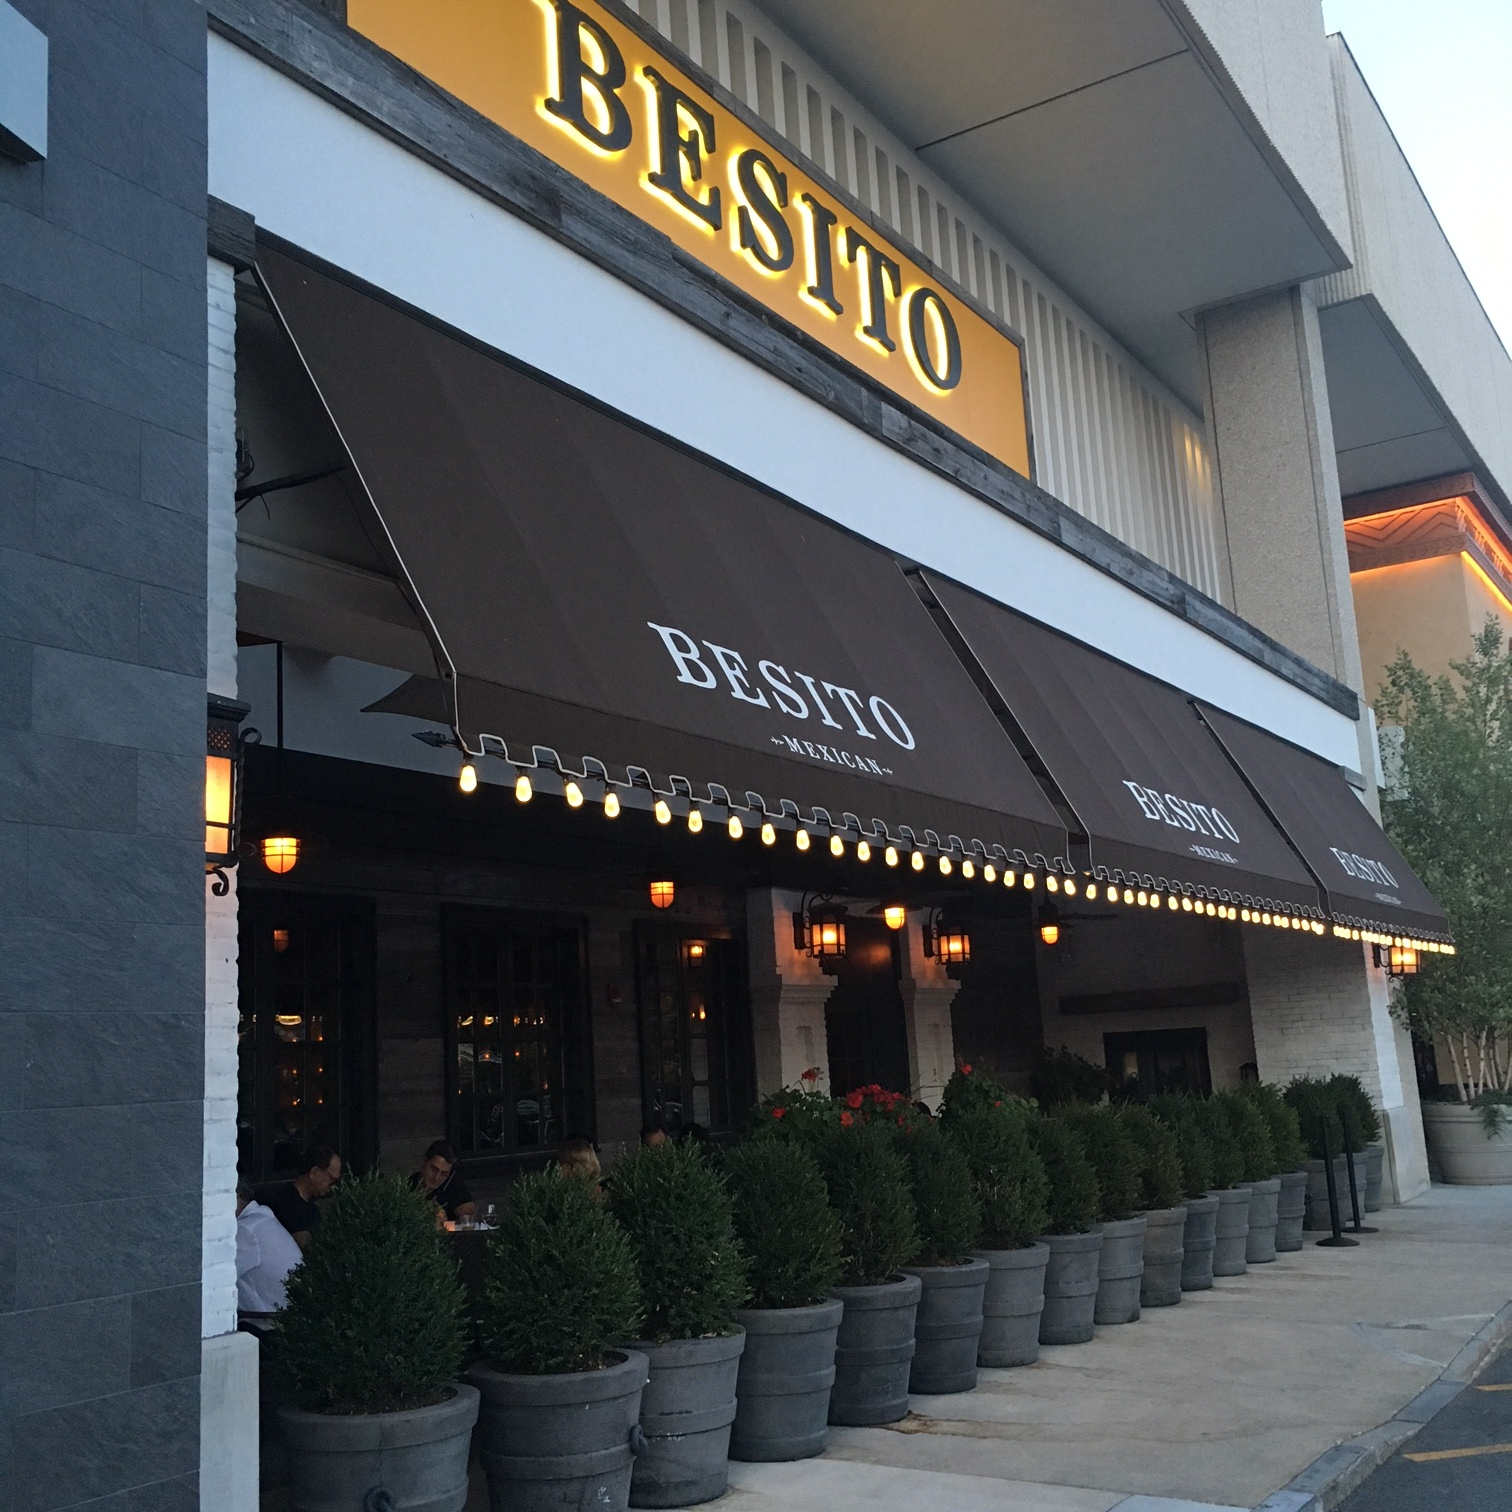 besito mexican chestnut hill review